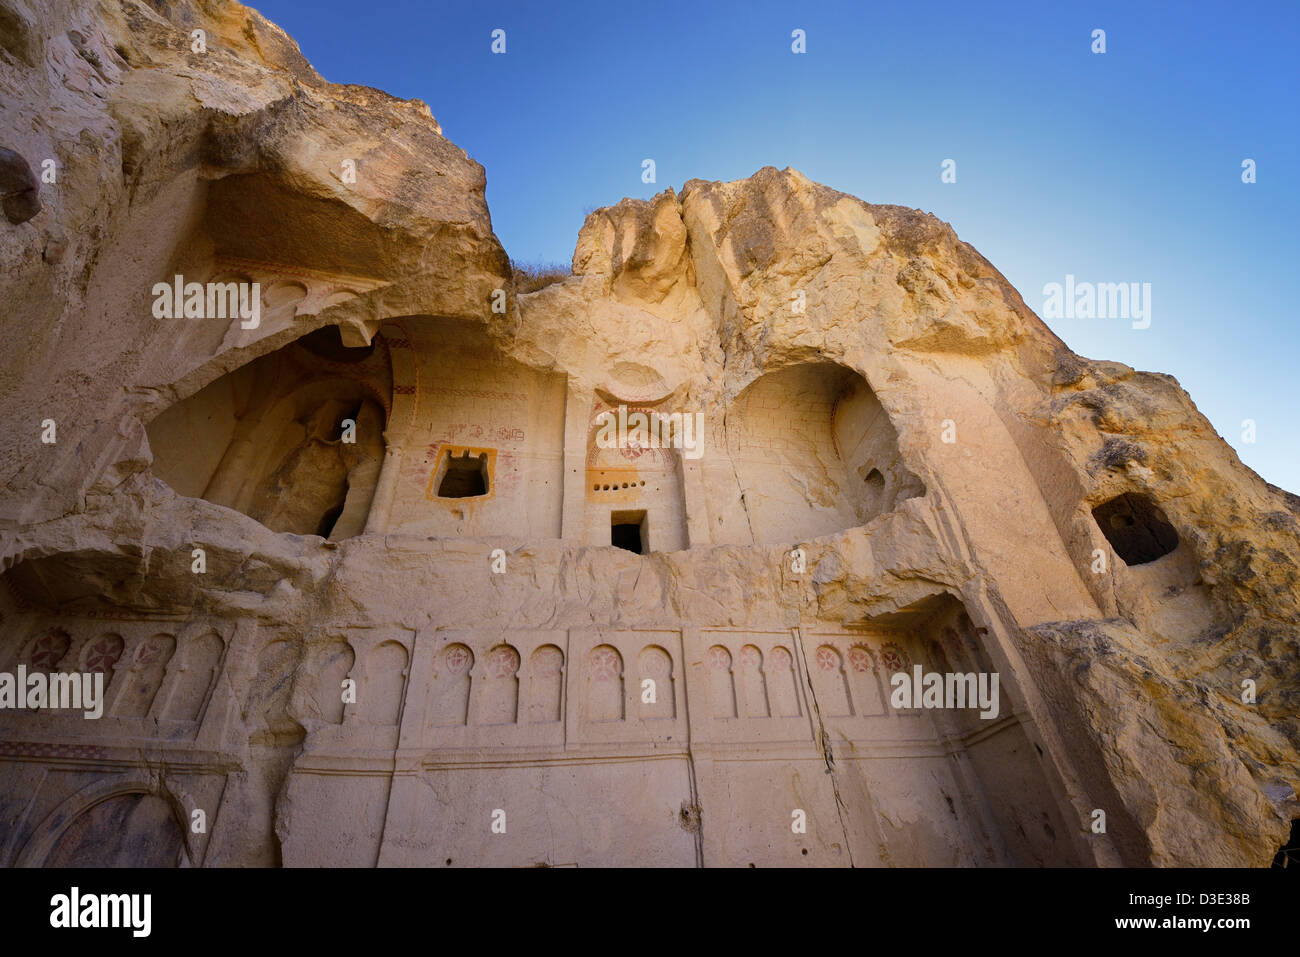 Crumbled exterior of the Dark Church christian monastery cave at the Goreme Valley Open Air Museum Cappadocia Turkey - Stock Image